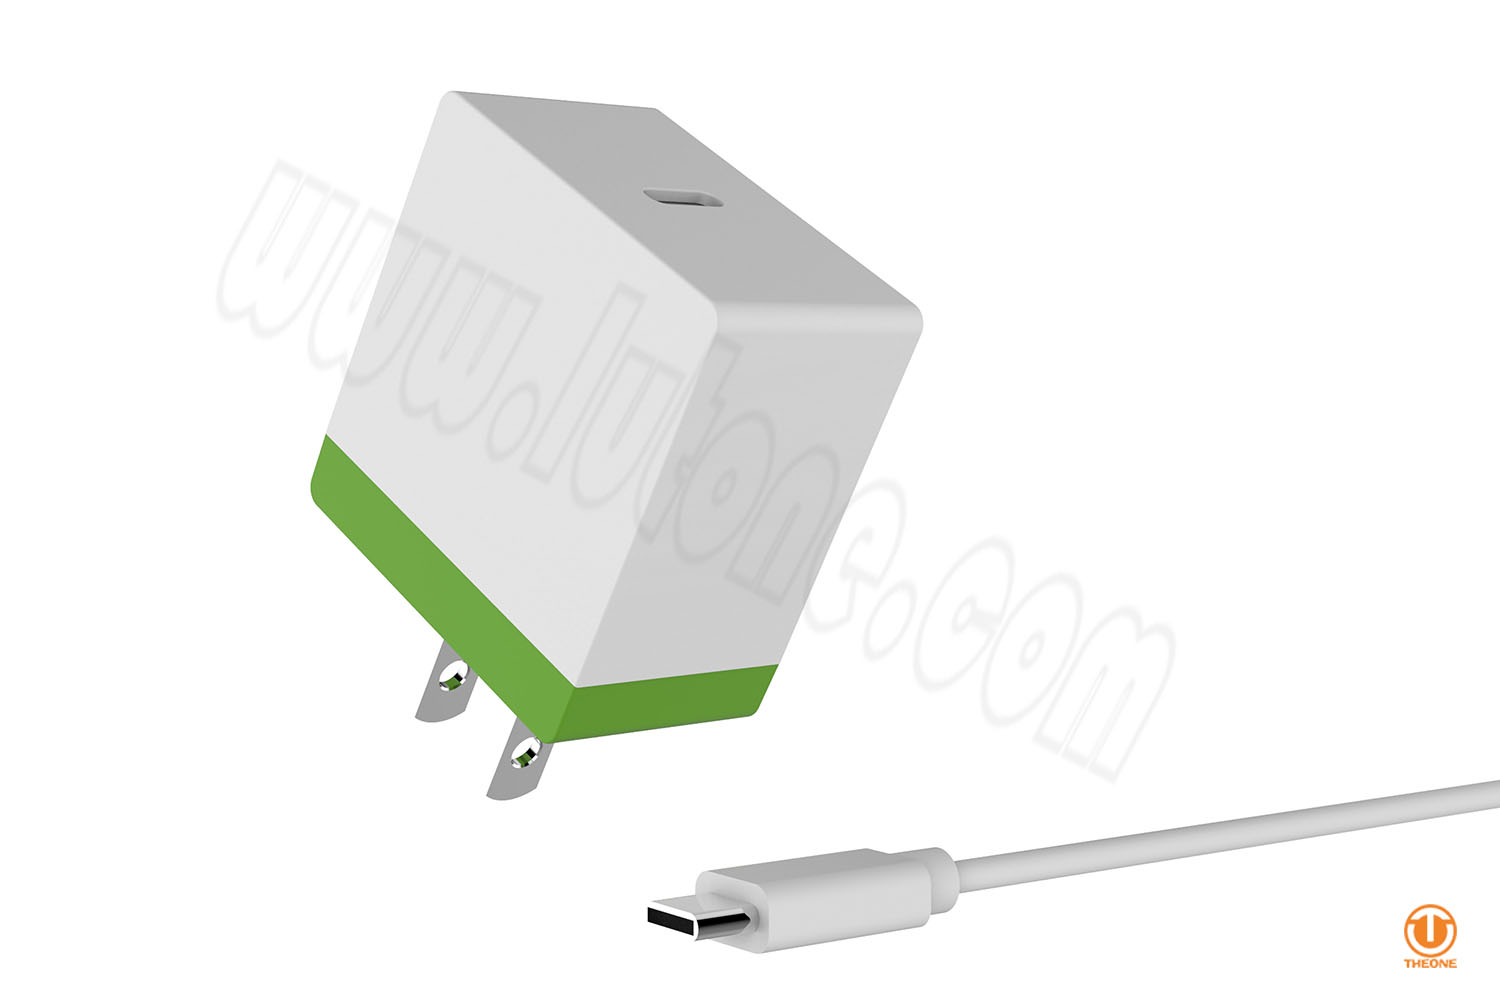 tp184c-5 18w usb-c pd charger